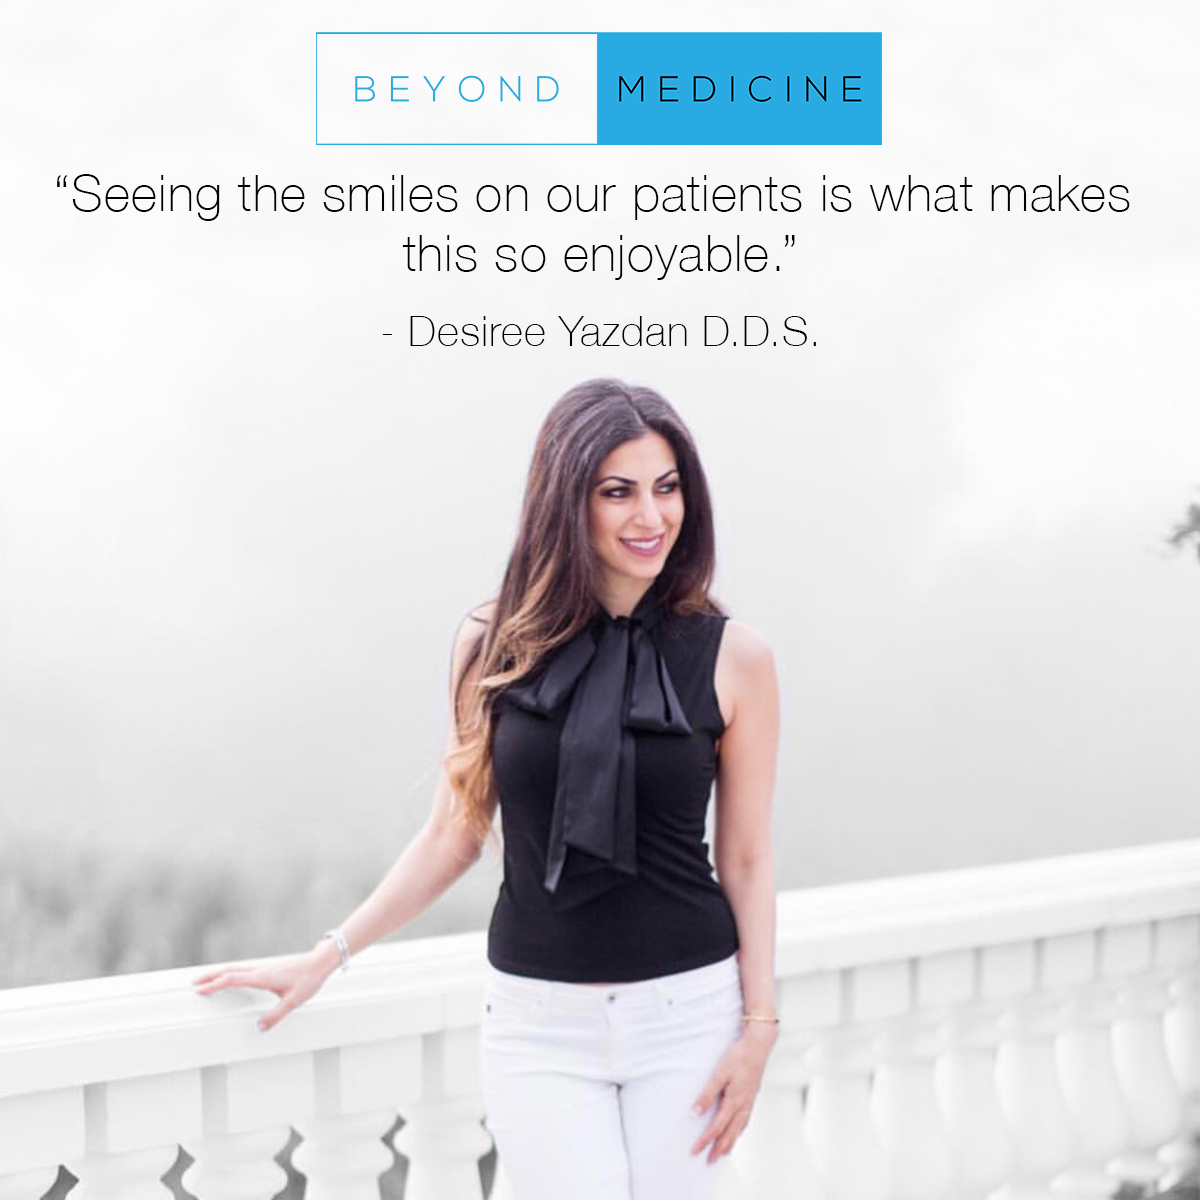 Oral Hygiene, Whiter Teeth and Smile Makeovers - Dr. Desiree Yazdan, DDS is a practicing Dentist with specialized expertise in cosmetic dentistry. She talks with us today about some common misconceptions regarding oral hygiene will guaranteed have you flossing by the end of this episode.